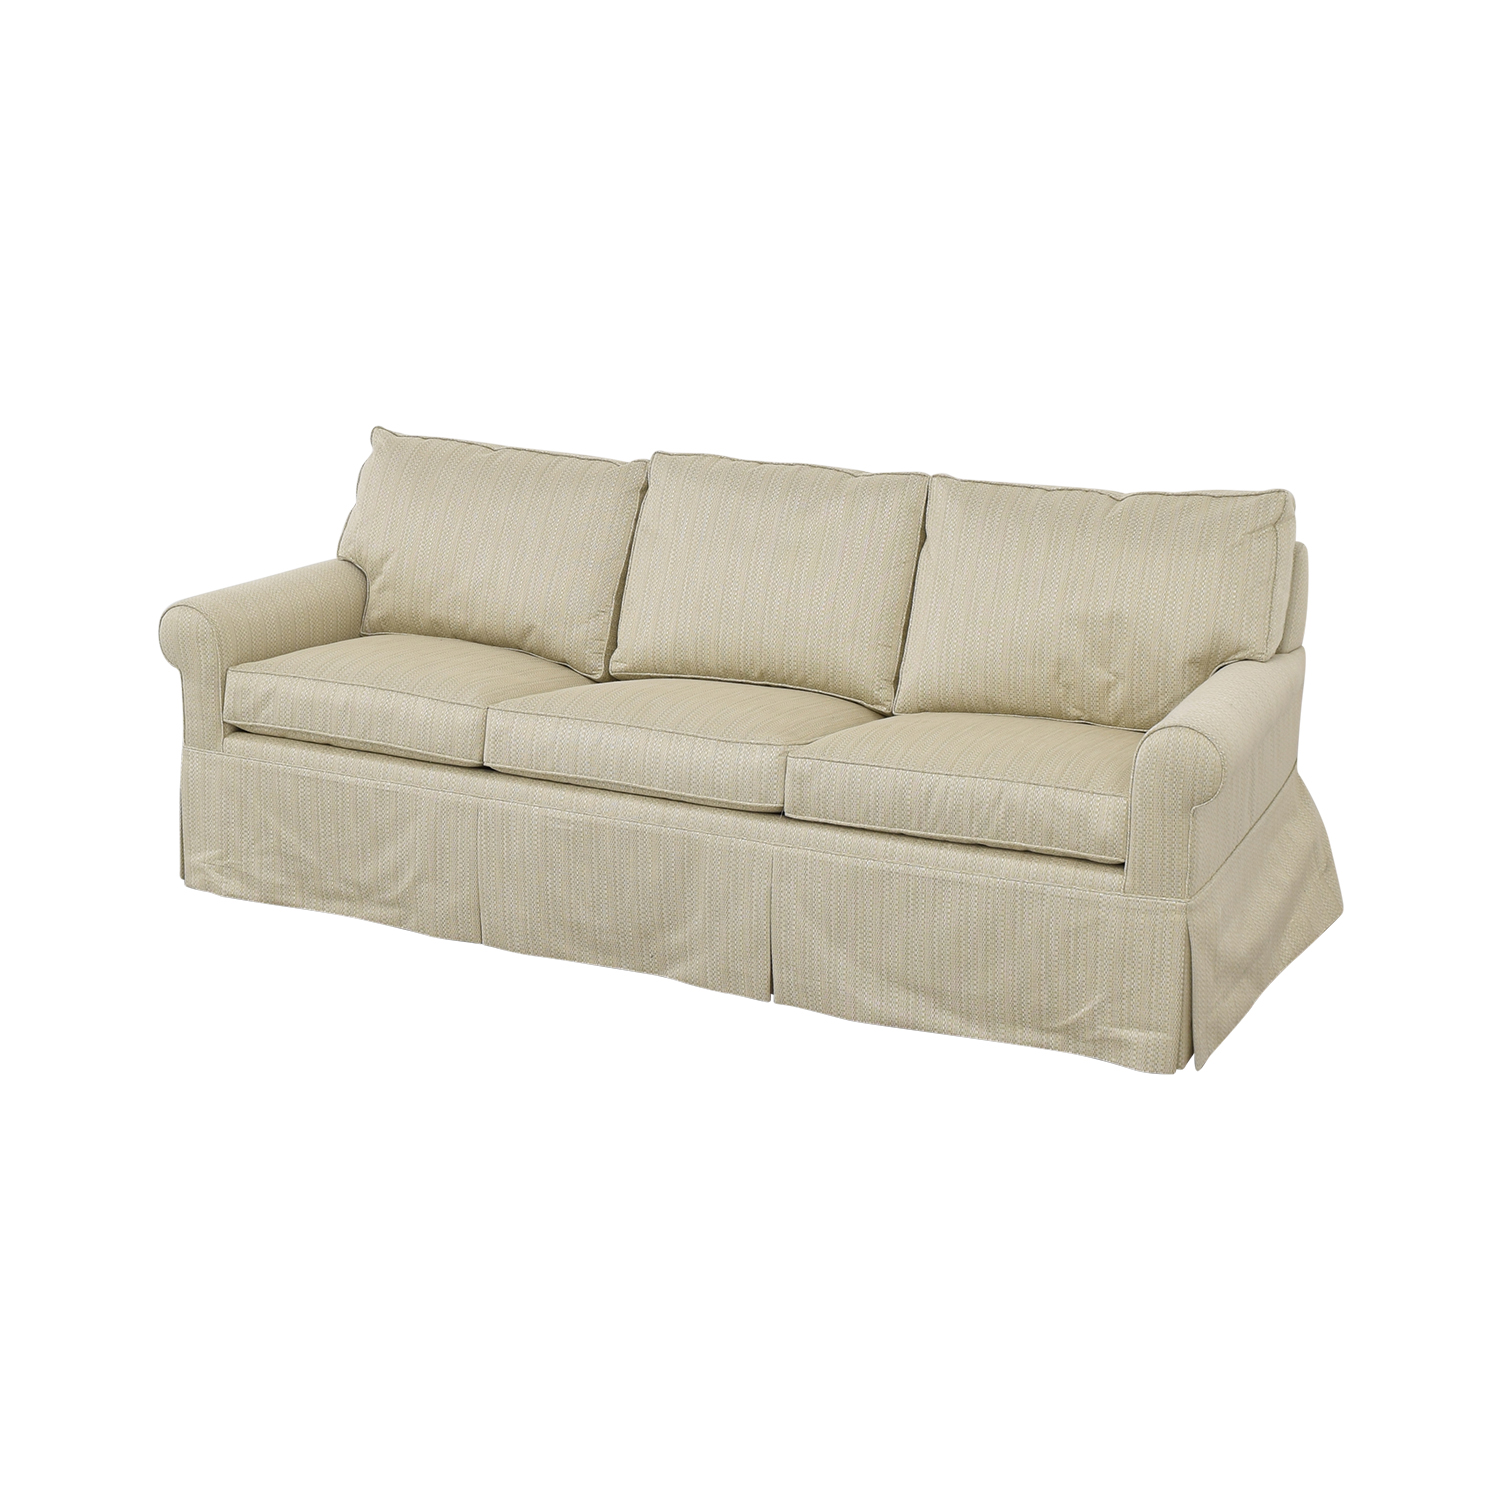 Carlyle Carlyle Queen Plus Sleeper Sofa ma